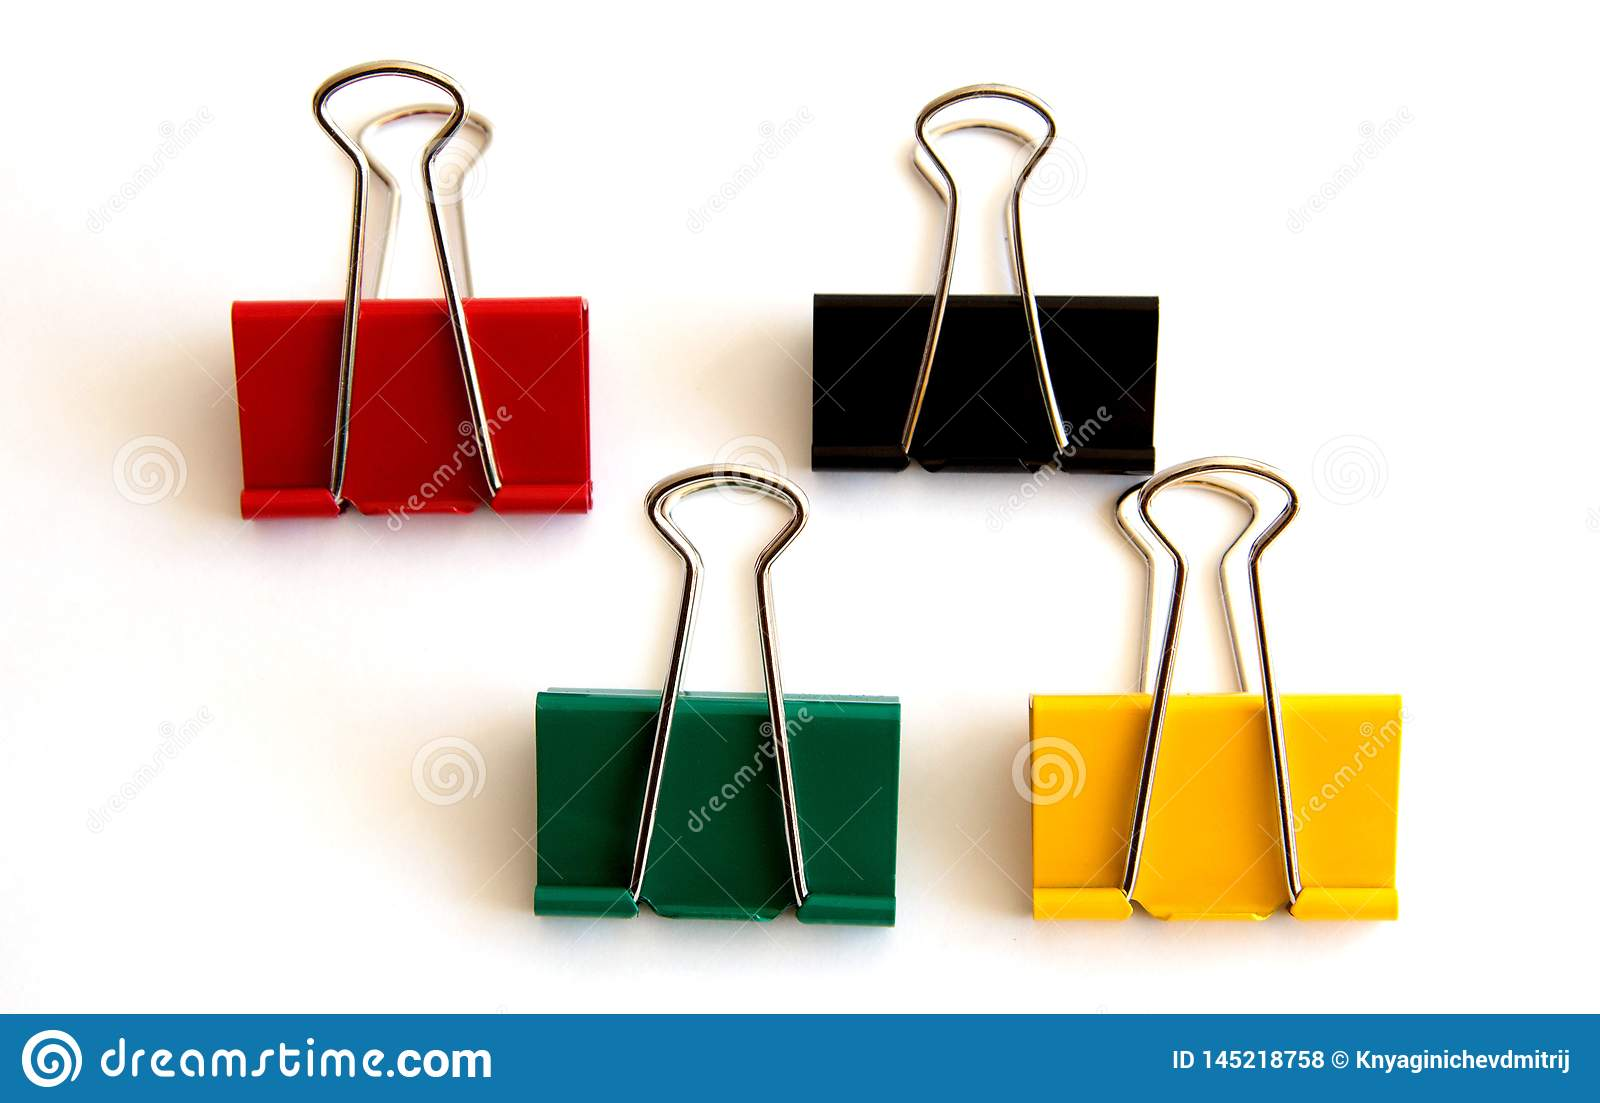 Multiple colored paper clip isolated on white background - image